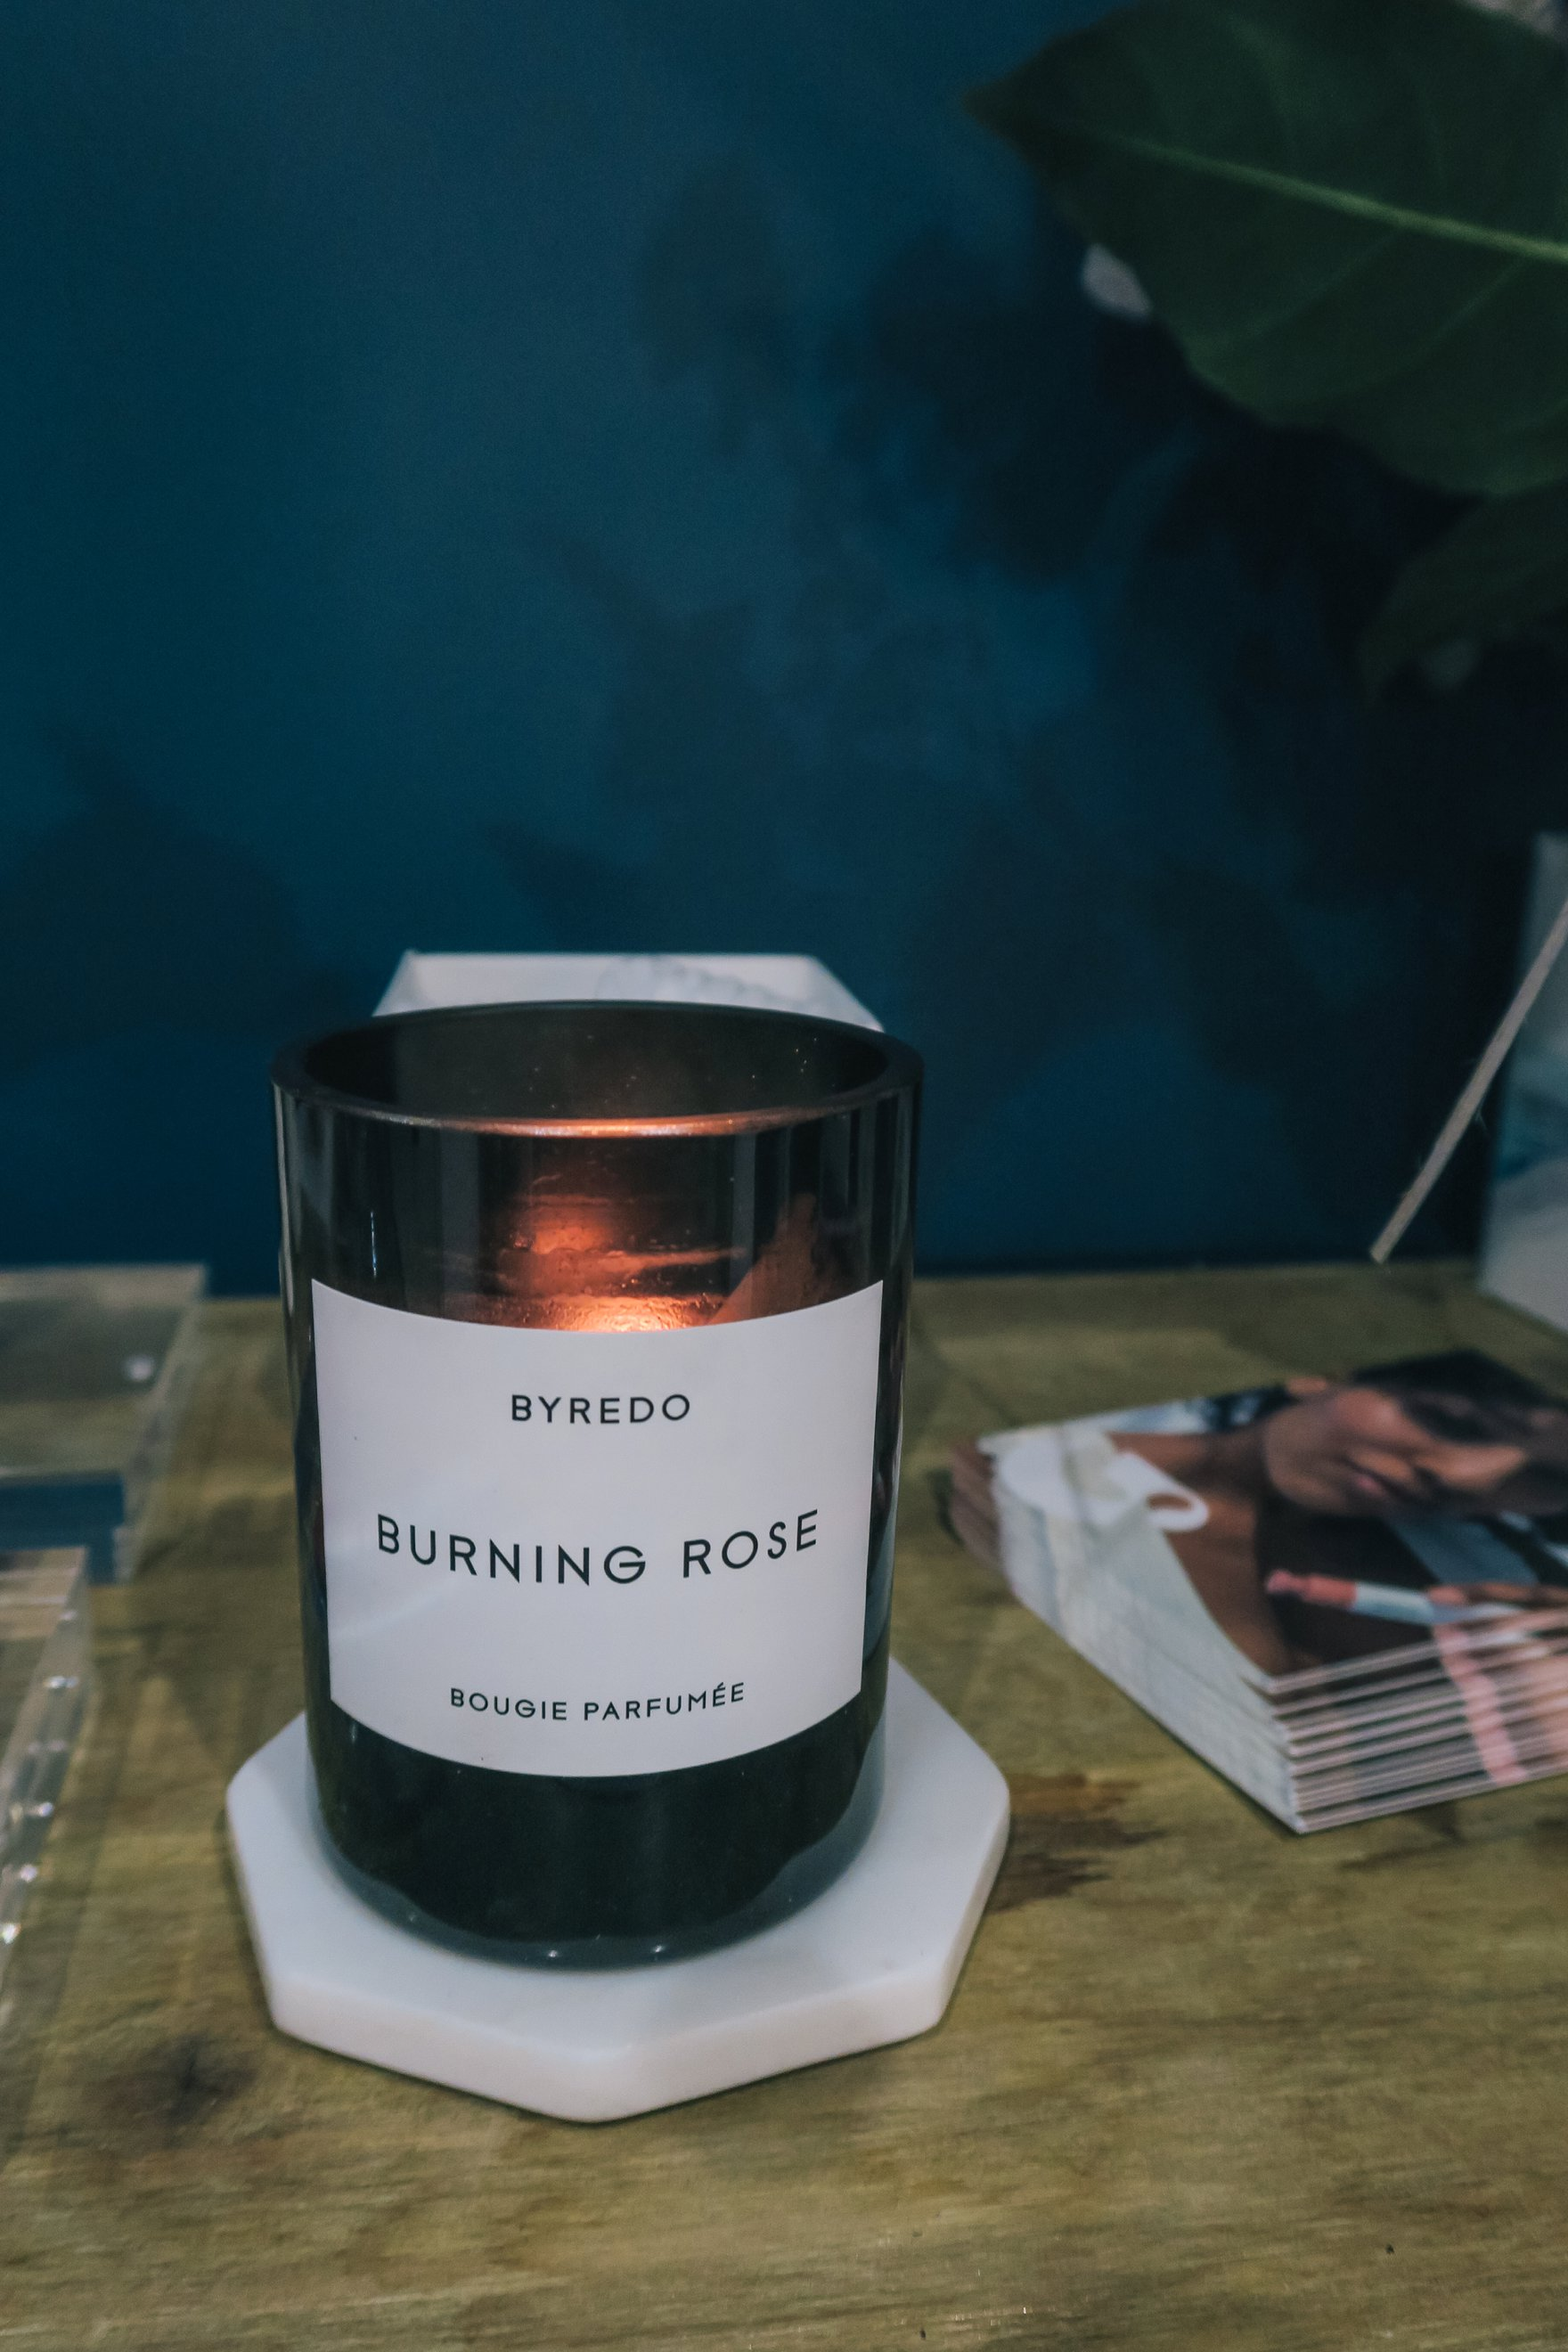 burning rose candle presentation on instagram // a business and blogging social media workshop called The Workshop PHX by the Bloguettes - a review.